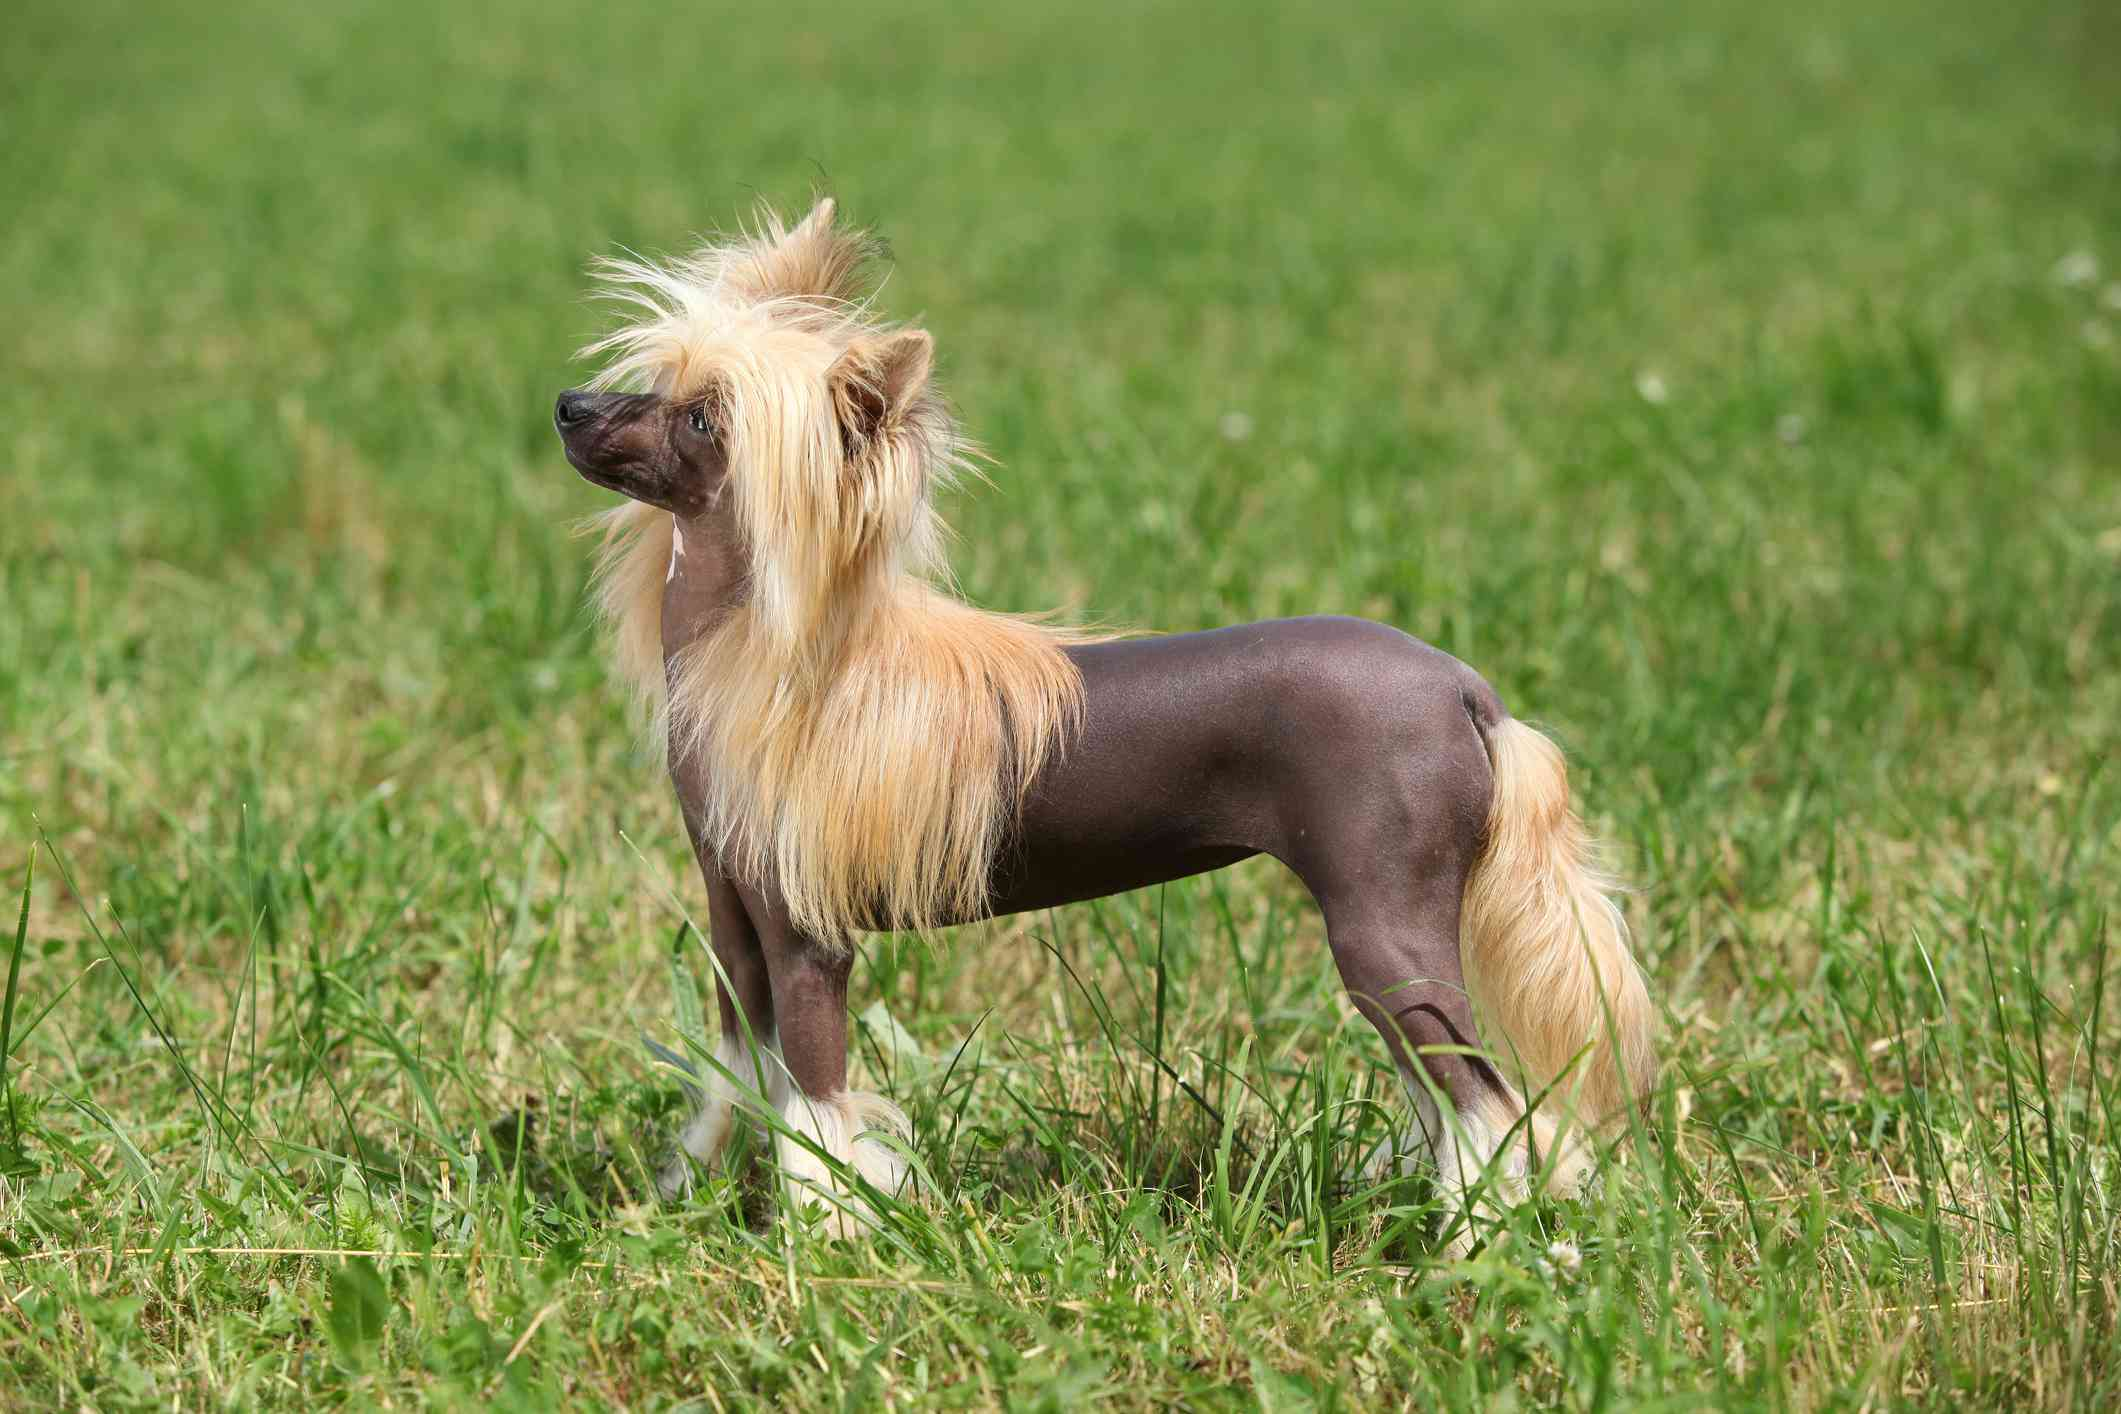 A small dog with gray skin on a hairless body and voluminous white hair on its head, feet, and tail standing in the grass.